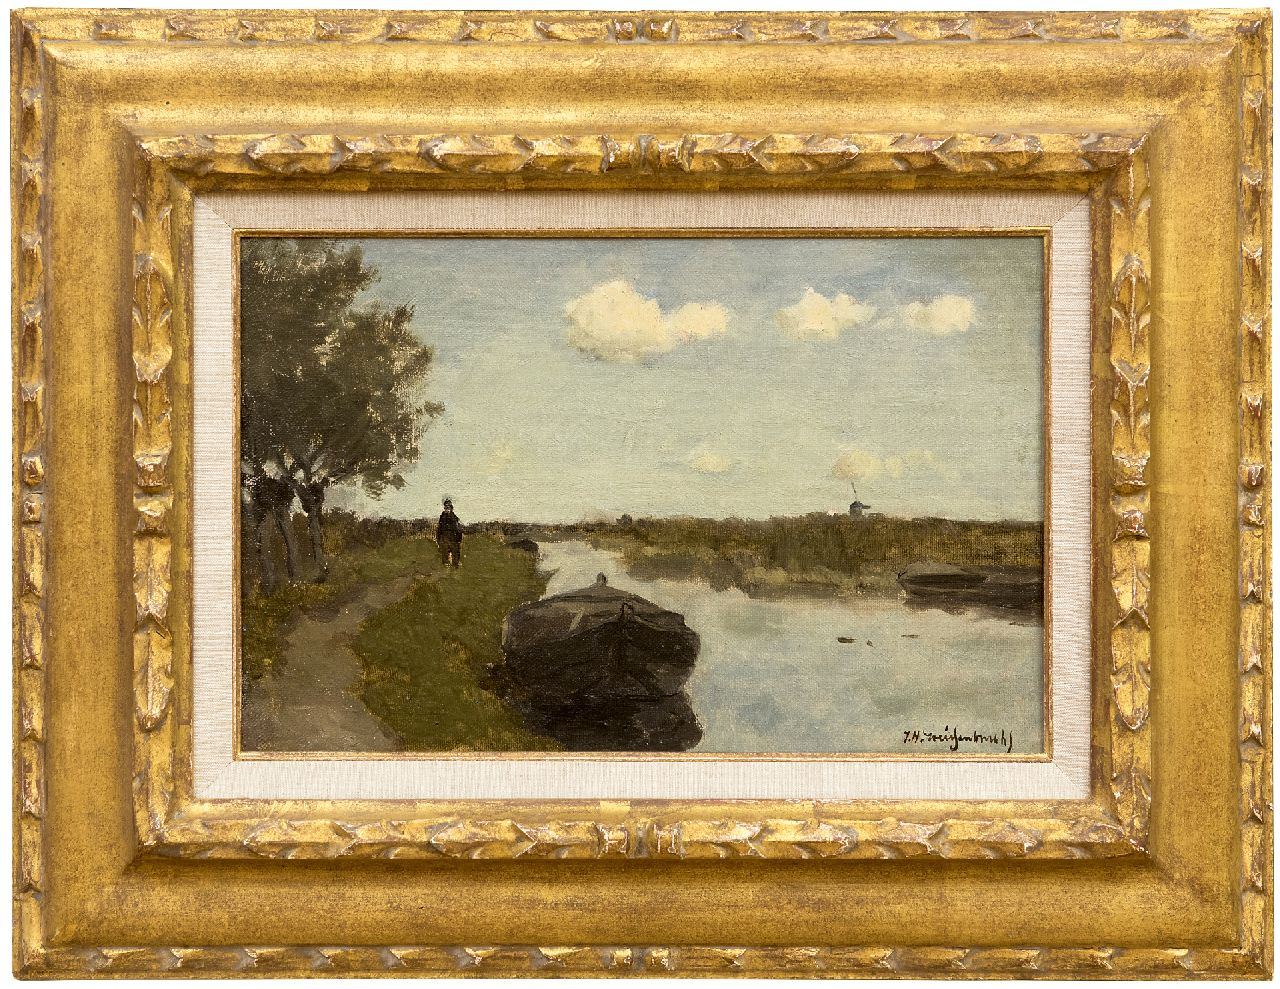 Weissenbruch H.J.  | Hendrik Johannes 'J.H.' Weissenbruch | Paintings offered for sale | Along the towpath, oil on canvas laid down on panel 21.0 x 31.0 cm, signed l.r.